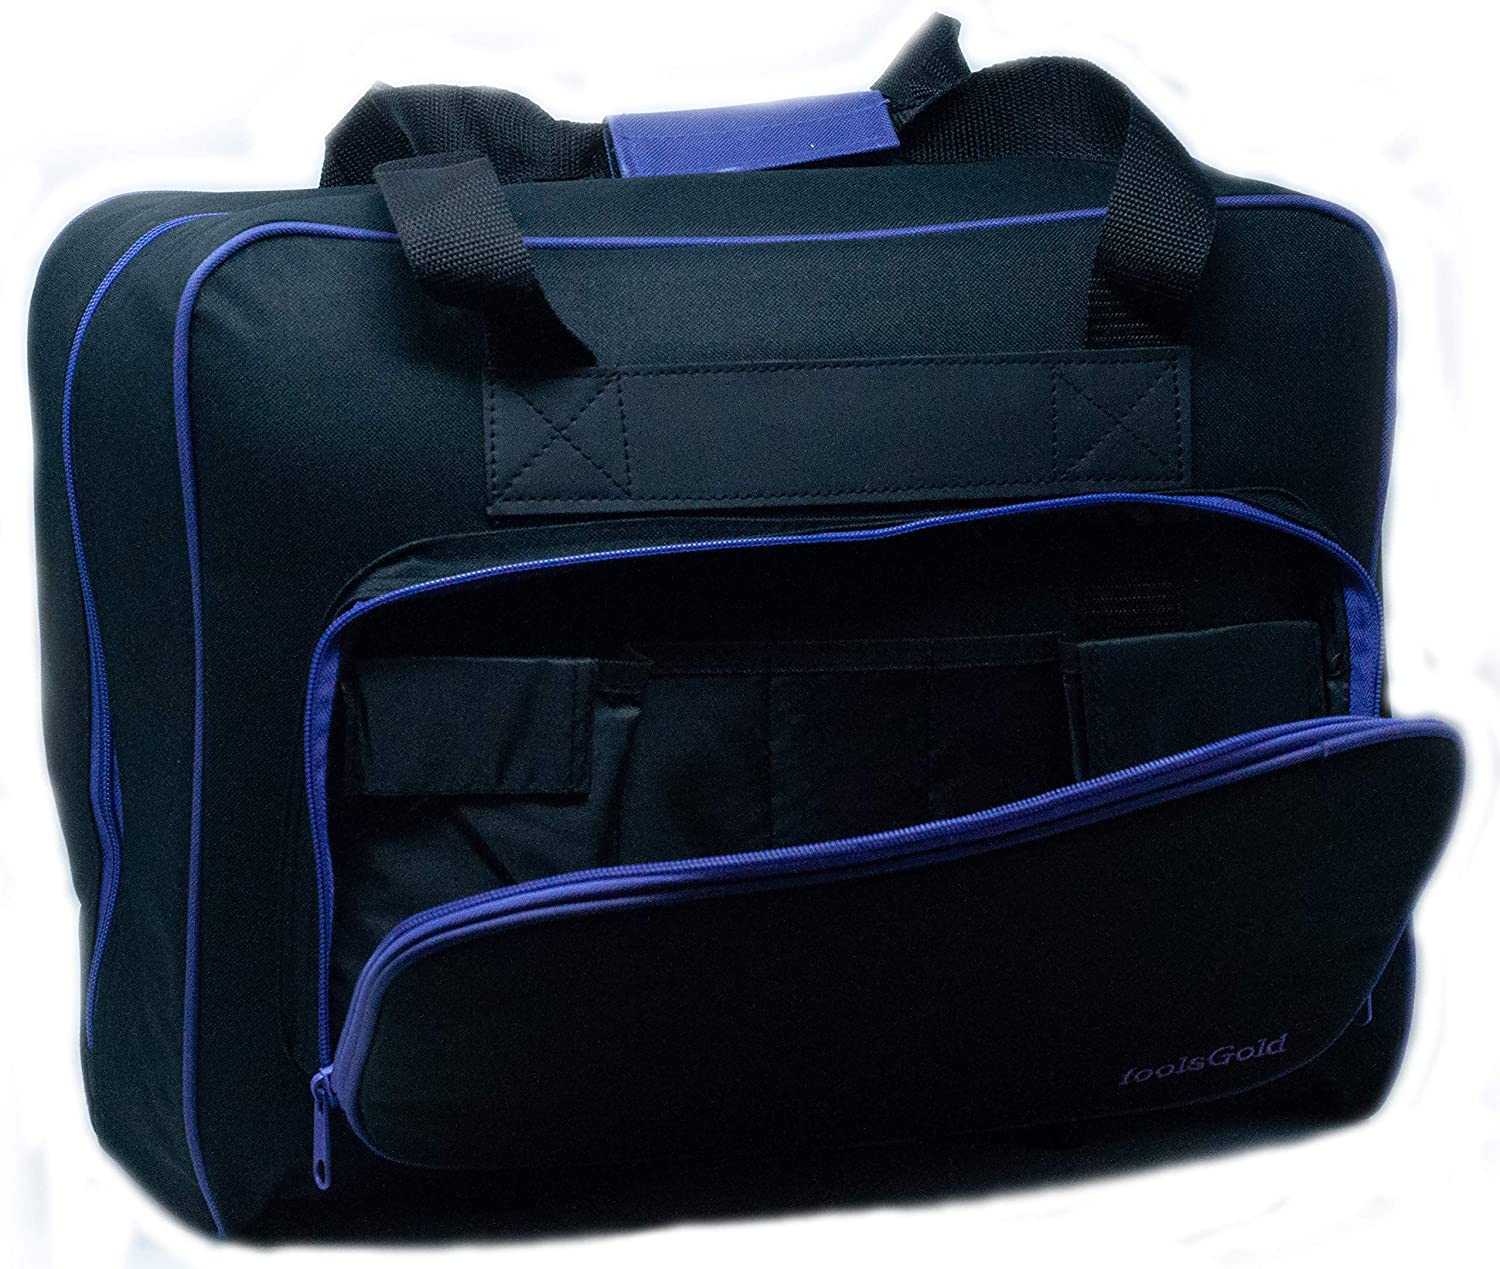 Amazon.com: foolsGold Pro Thick Padded Sewing Machine Bag Carry Case (Black/Purple)